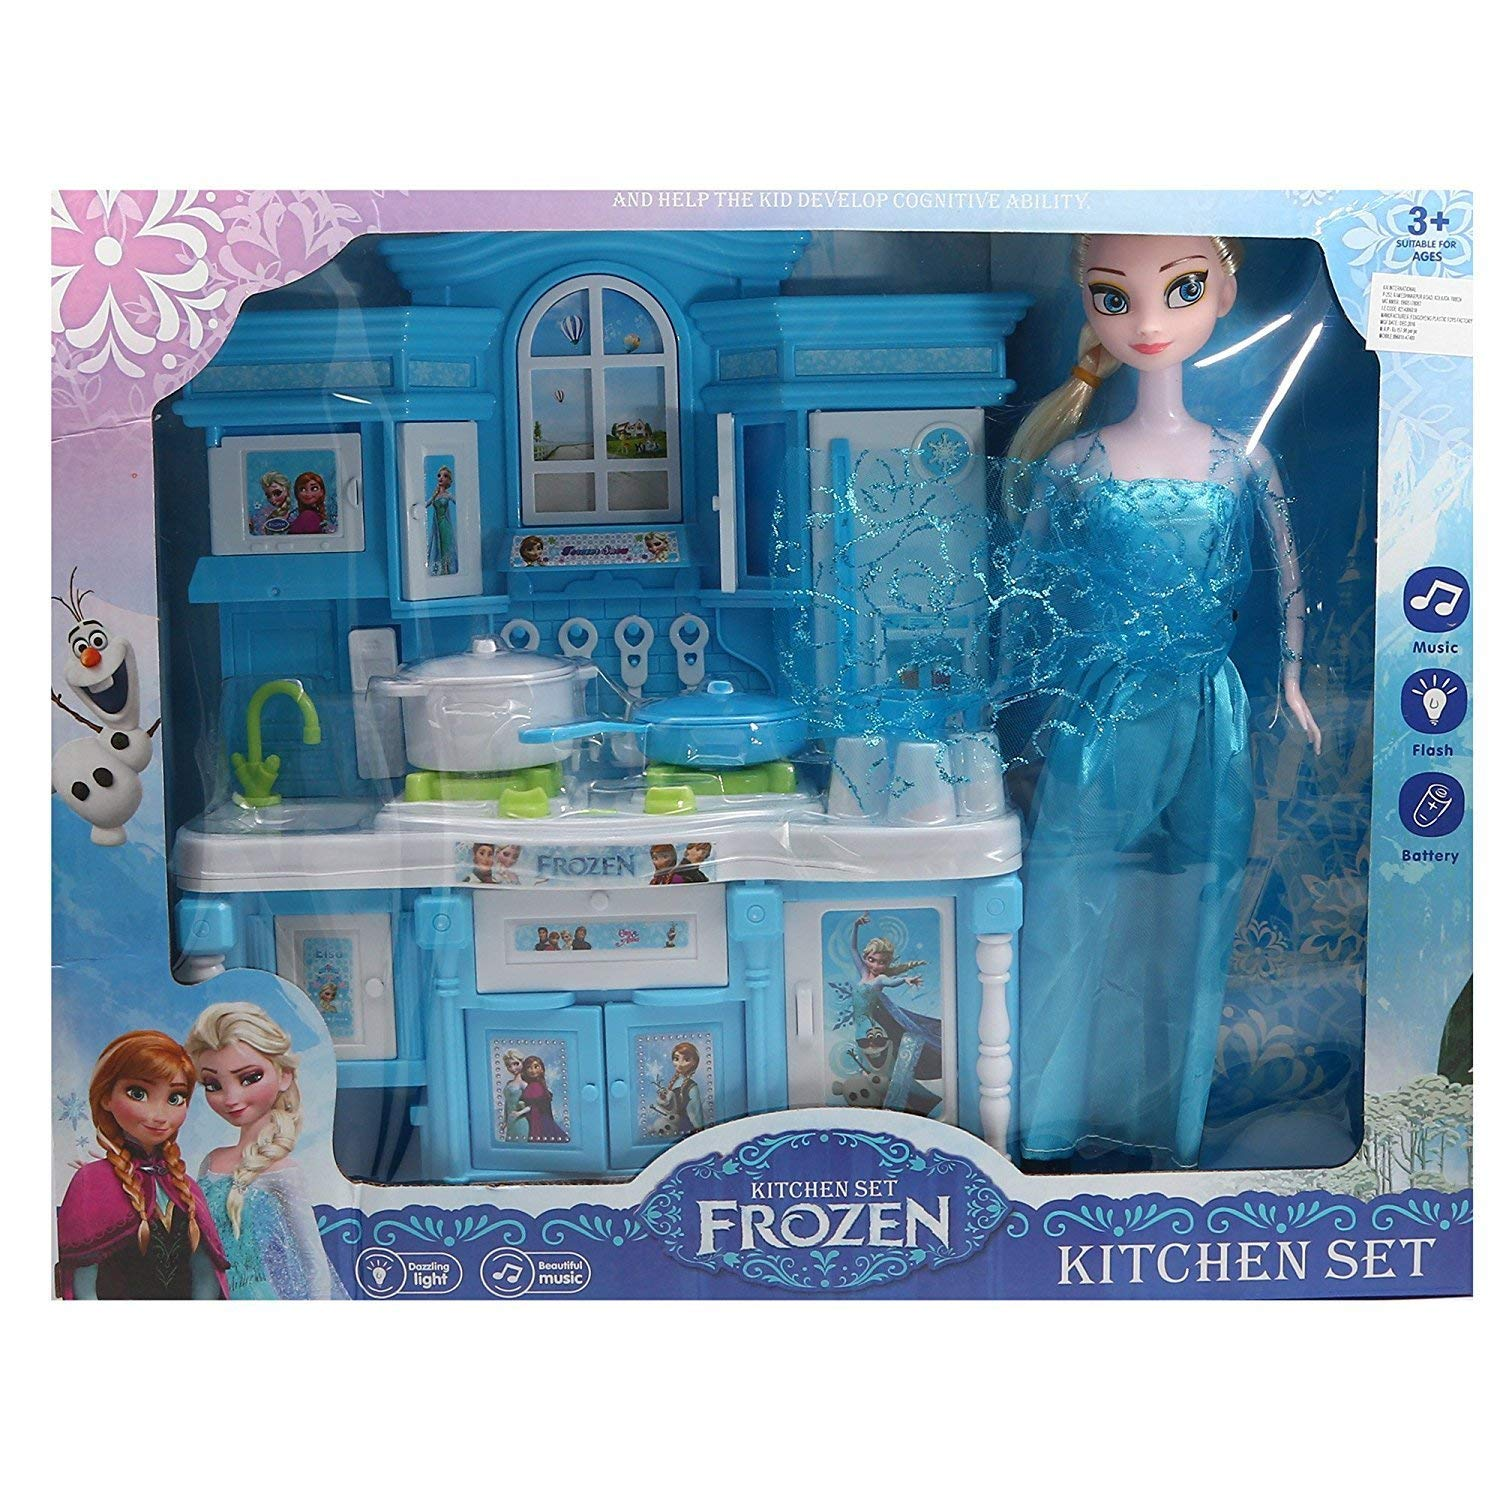 Buy crazy toys frozen kids kitchen set online at low prices in india amazon in